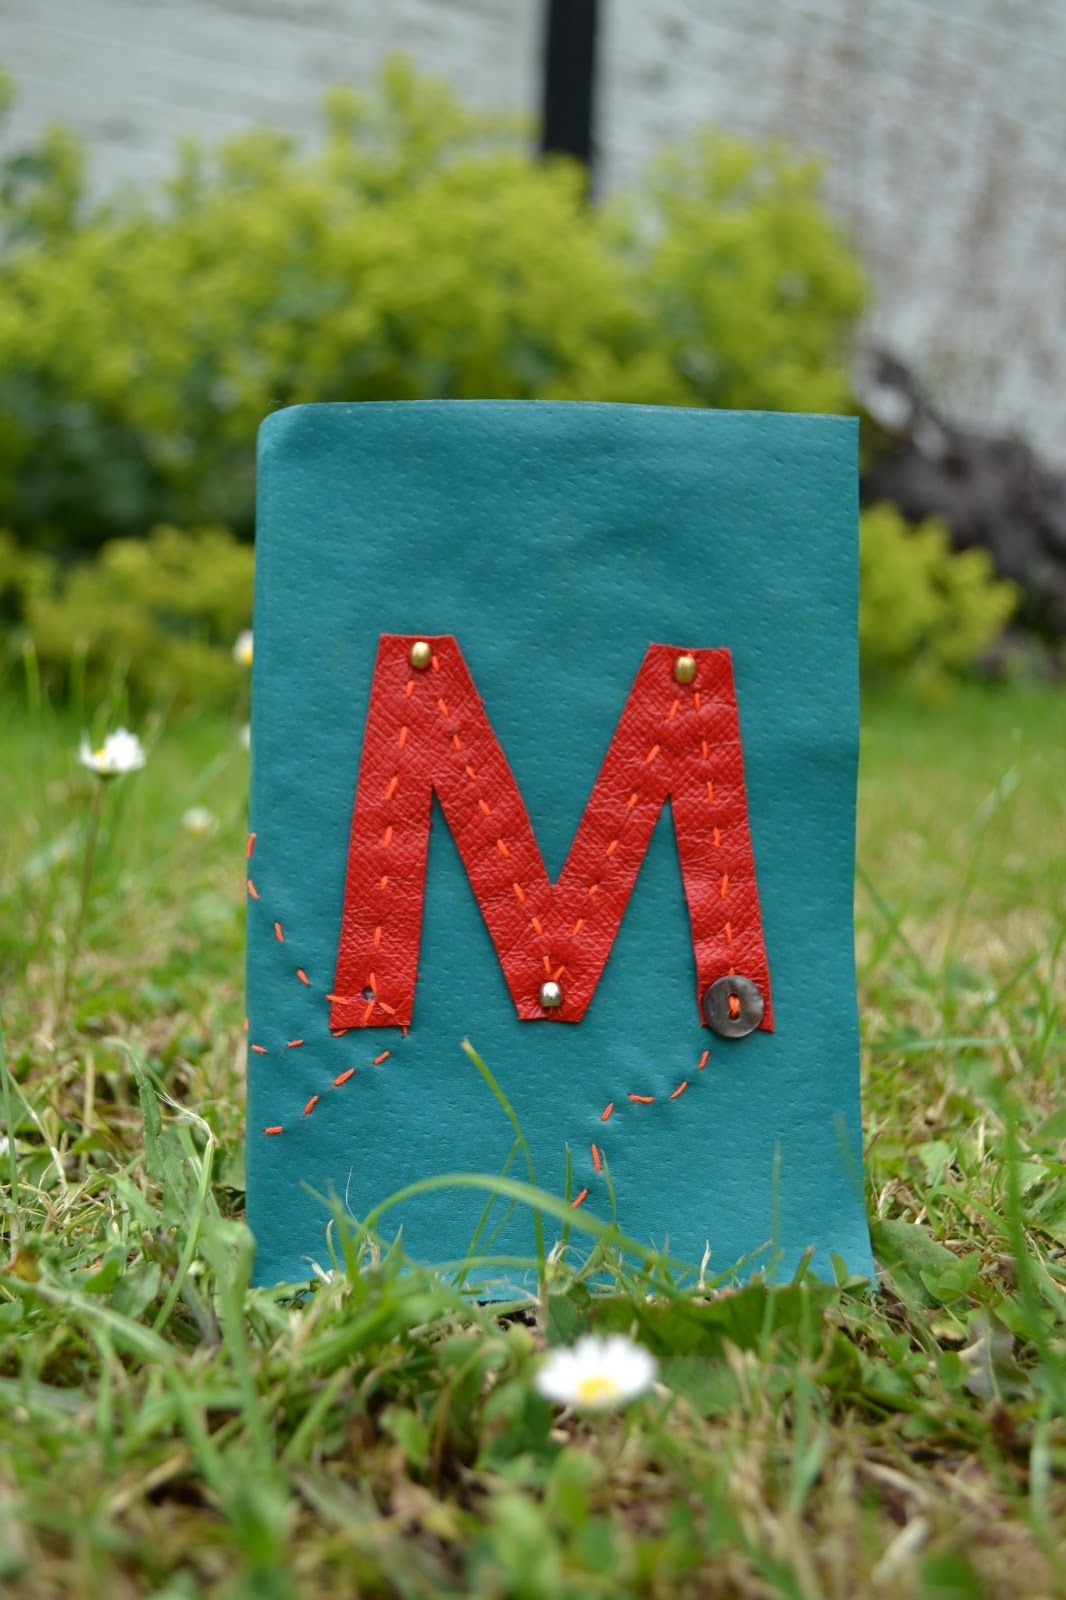 Meloleather personalised leather book made by Melo 2013